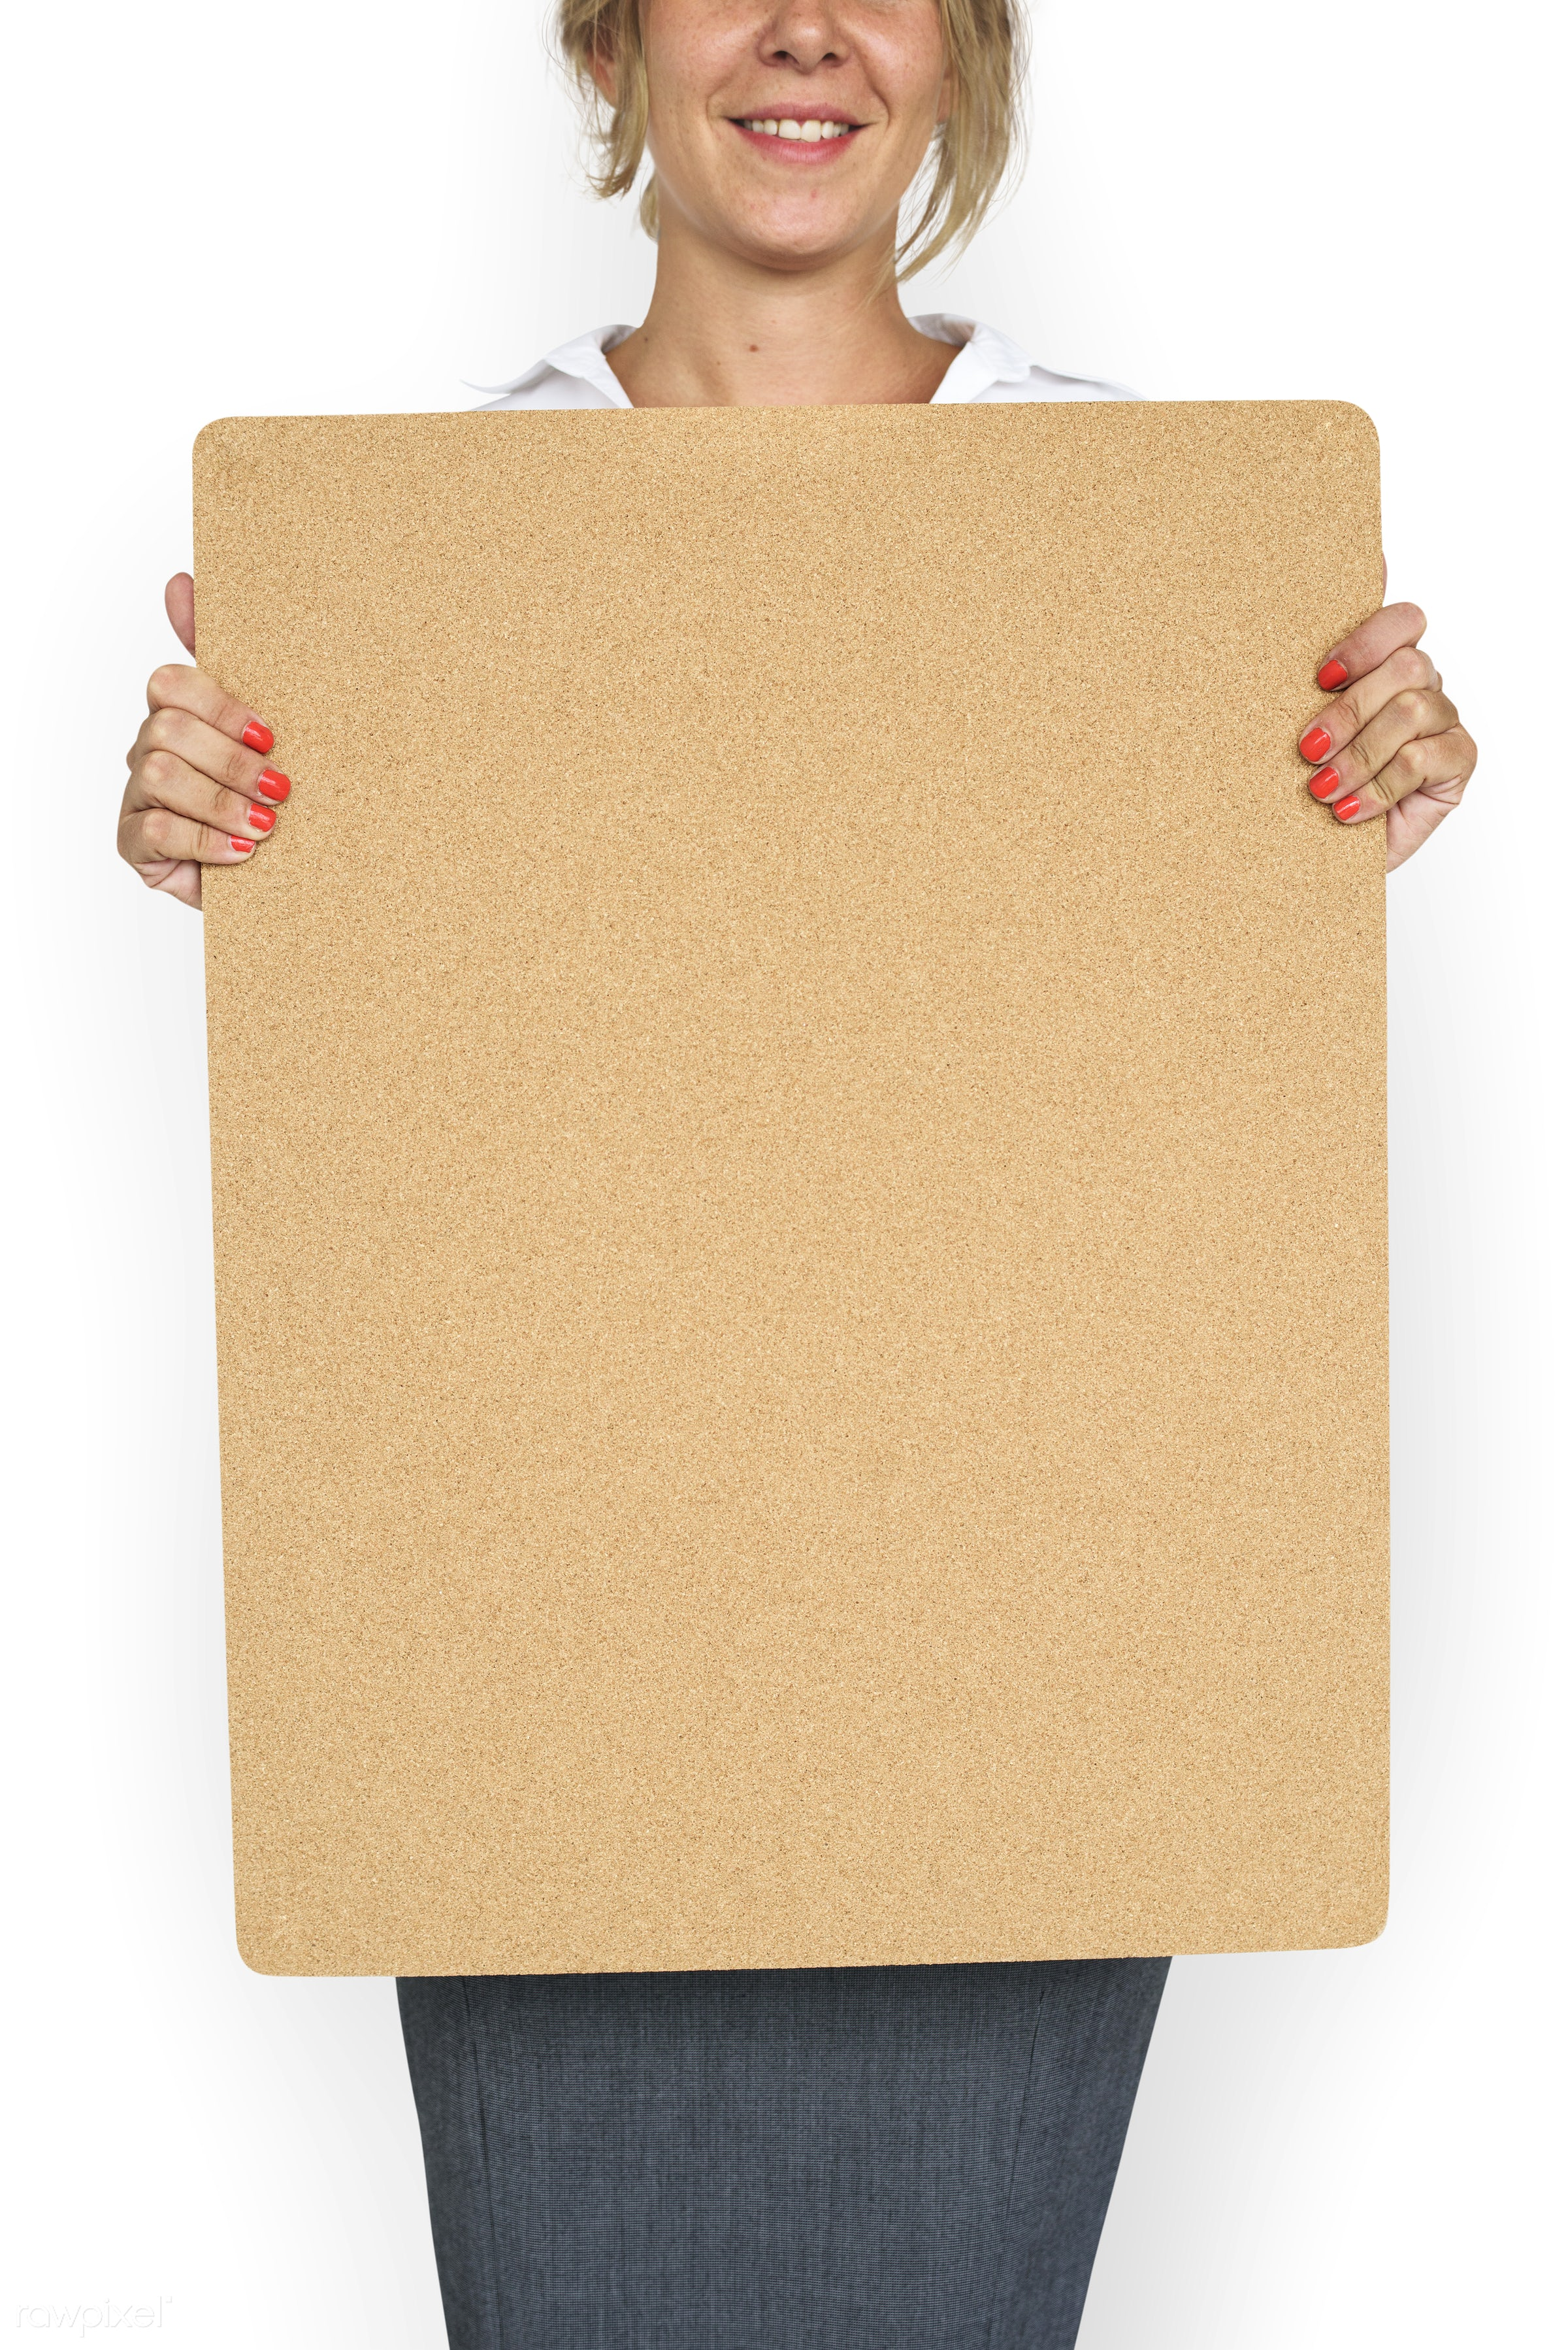 studio, expression, person, holding, courage, people, placard, woman, smile, cheerful, smiling, isolated, white,...